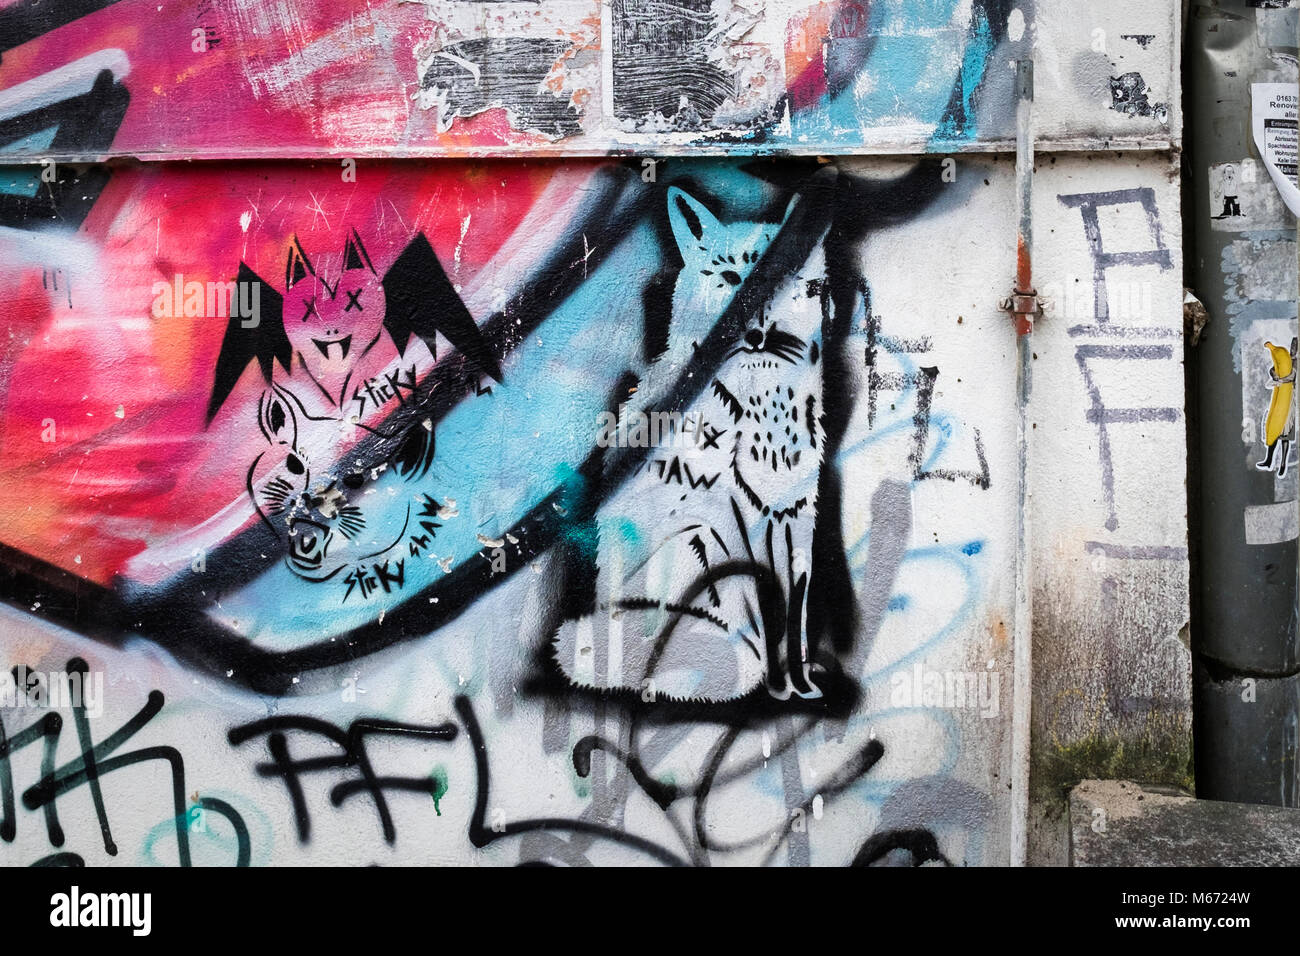 graffiti street art berlin tags stockfotos graffiti street art berlin tags bilder alamy. Black Bedroom Furniture Sets. Home Design Ideas